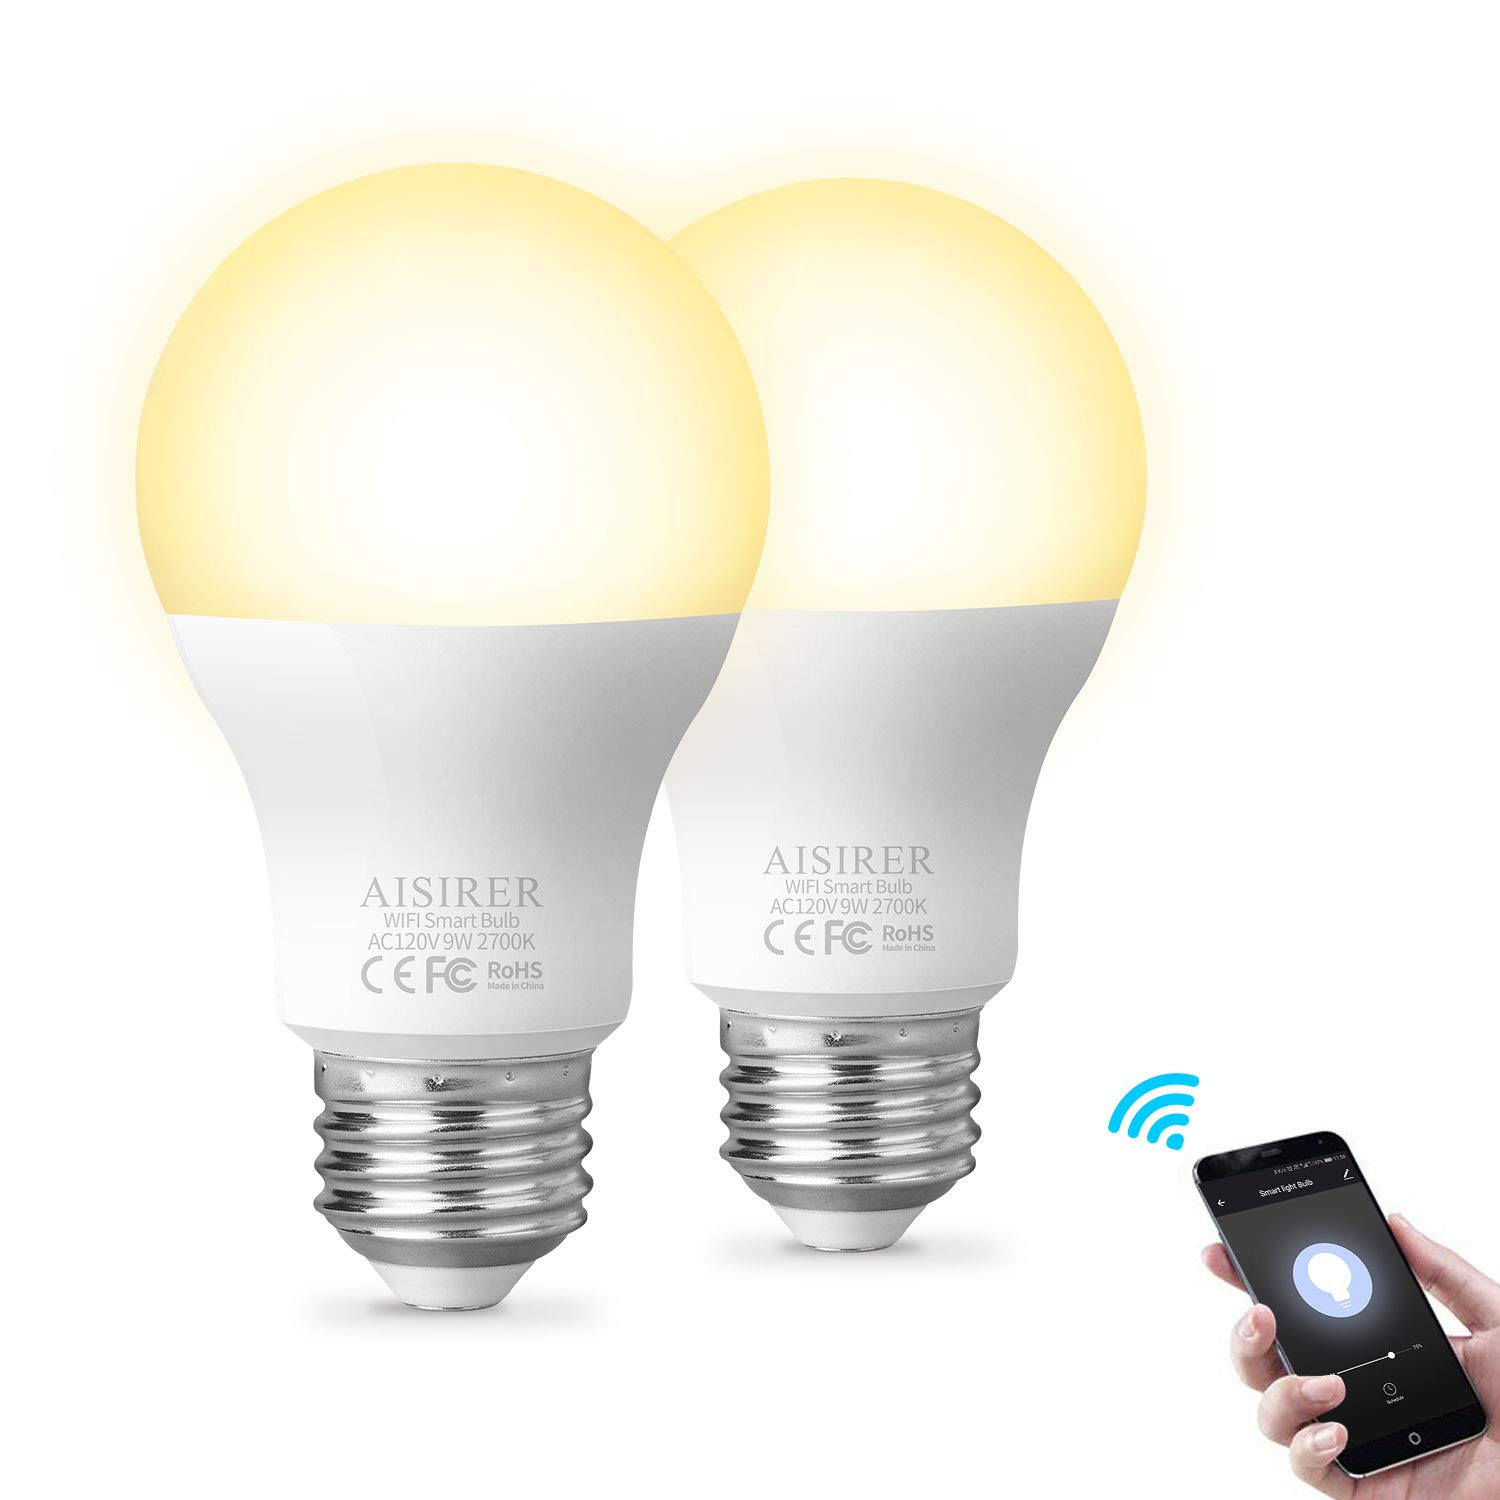 Wifi Light Bulb >> Smart Light Bulb Wifi A19 E26 Led Bulbs Compatible With Amazon Alexa Echo Google Home Assistant And Ifttt 9w Equivalent 60w Dimmable Warm Light 2700k